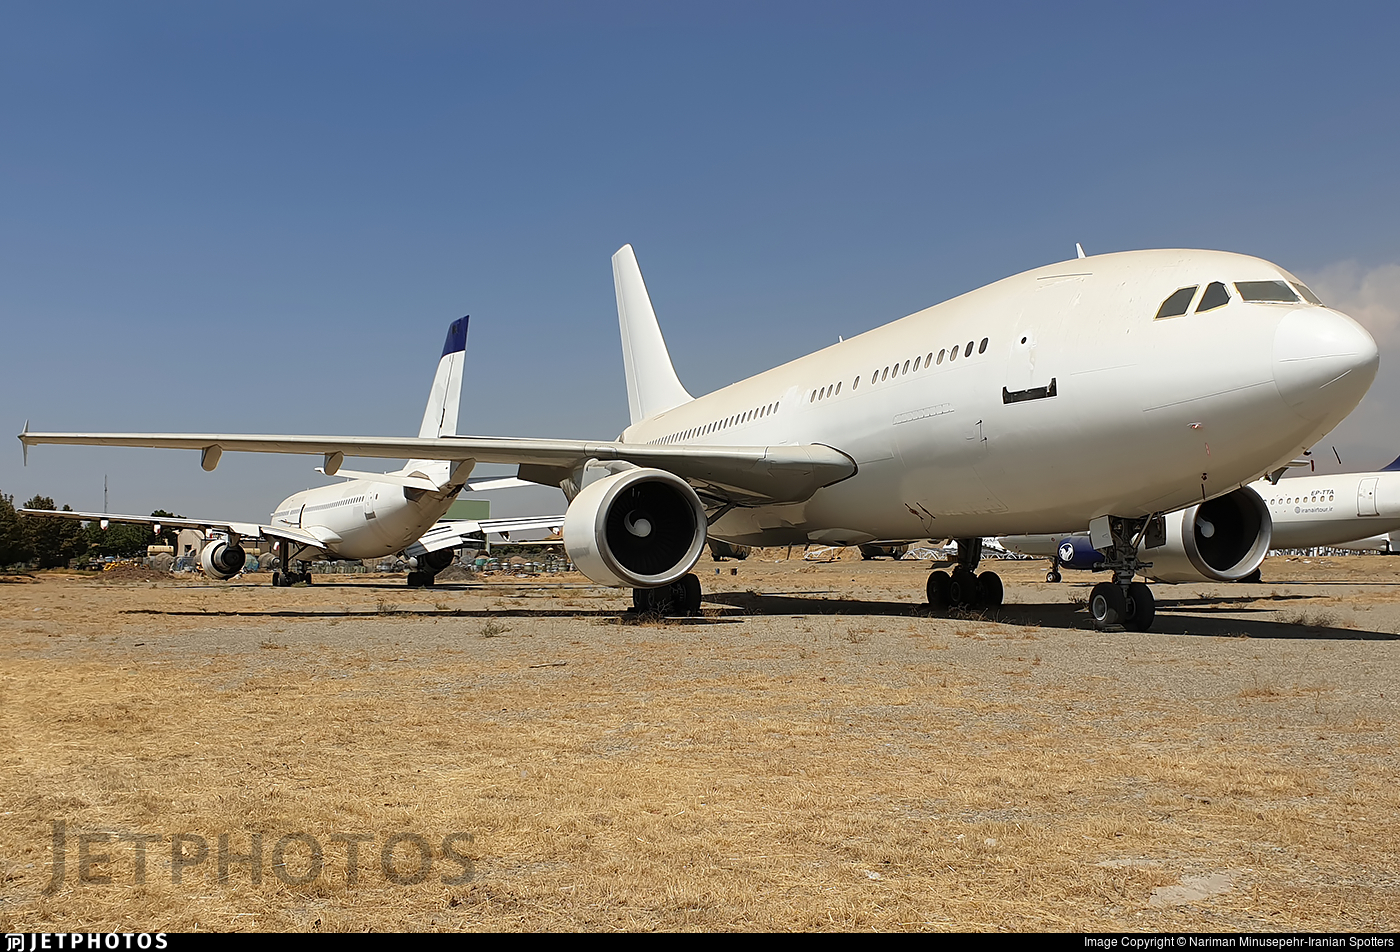 EY-705 - Airbus A310-324 - Asia Sky Lines